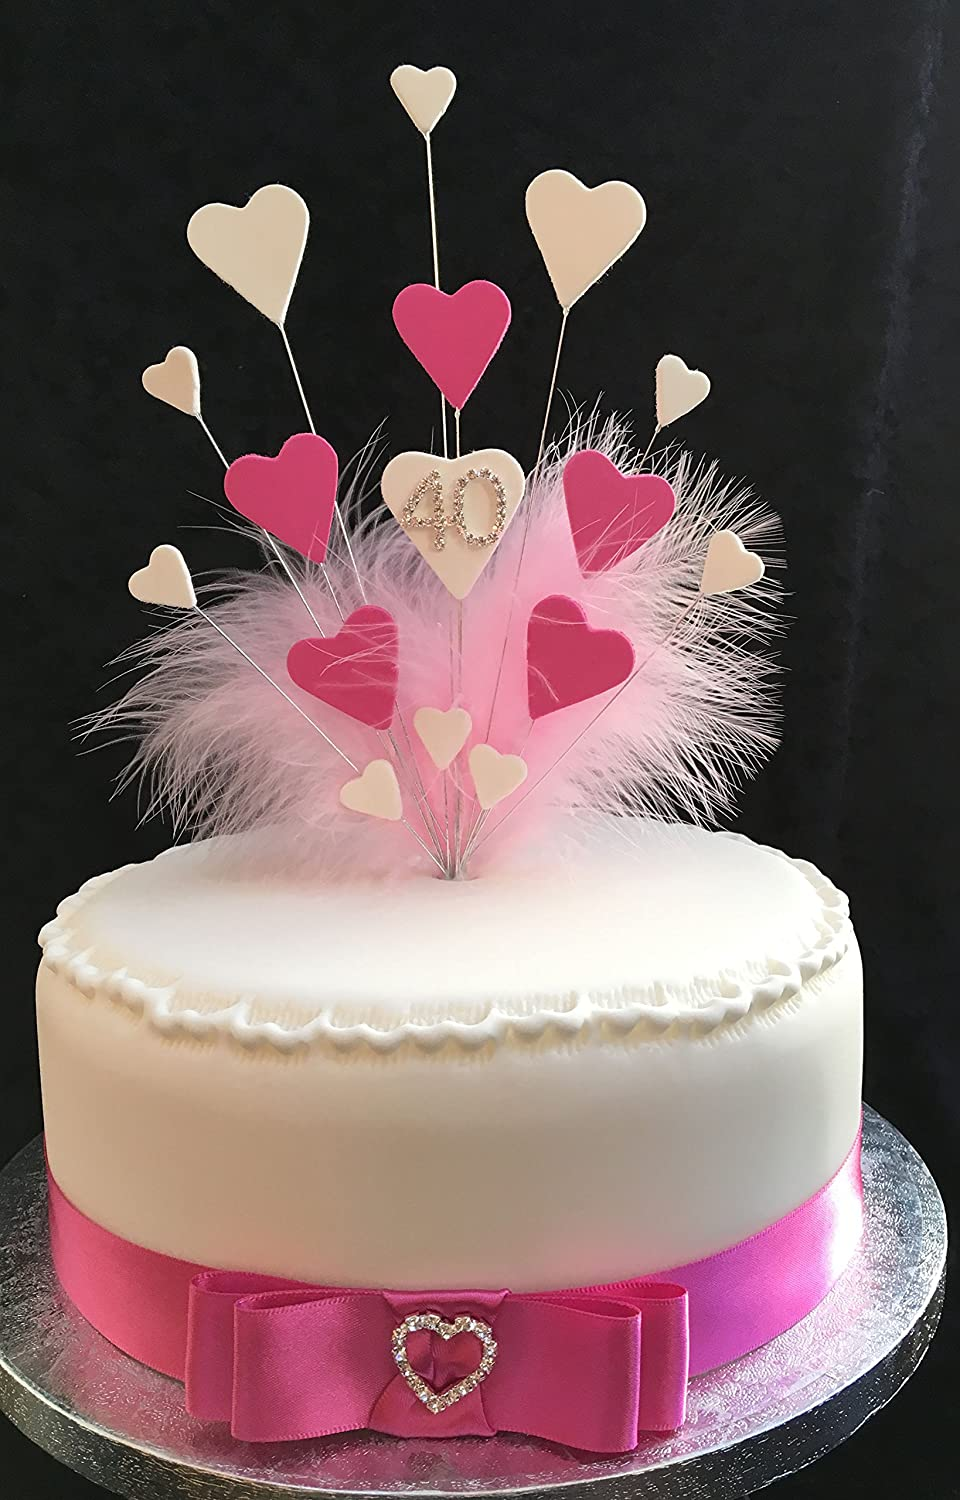 40th Birthday Wedding Anniversary Cake Topper Pink White Hearts Ideal For A 20cm PLUS 1 X Metre 25mm Hot Coloured Satin Ribbon With Attached Bow